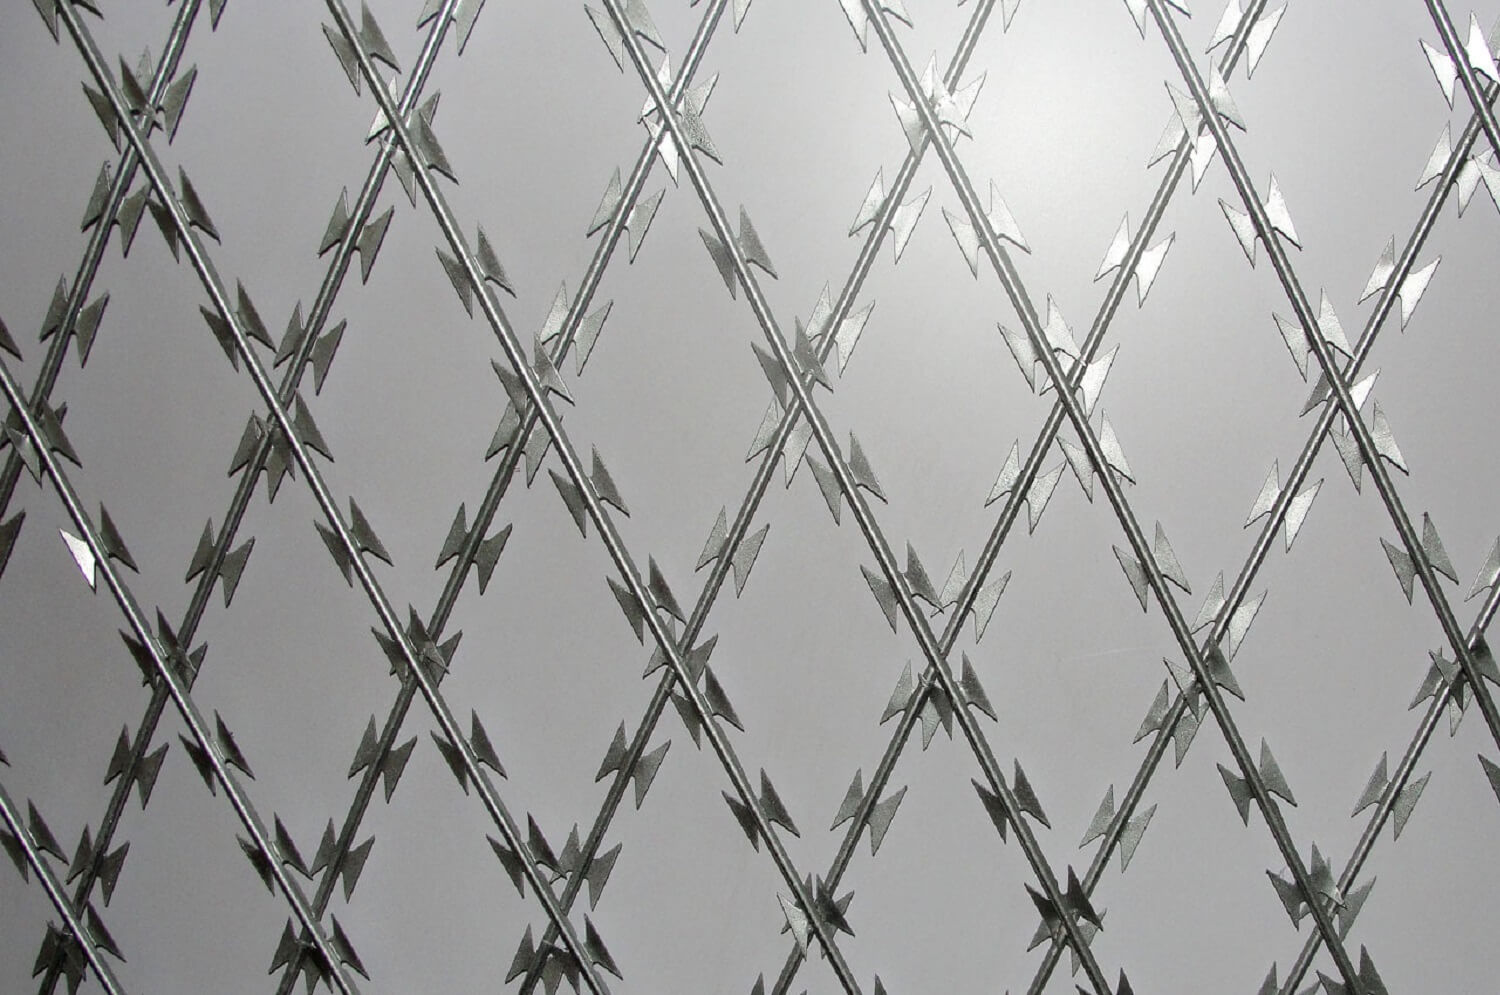 Razore Wire Concertina Wire - Pulu Group - Pulu Group, Building Material Manufacturer